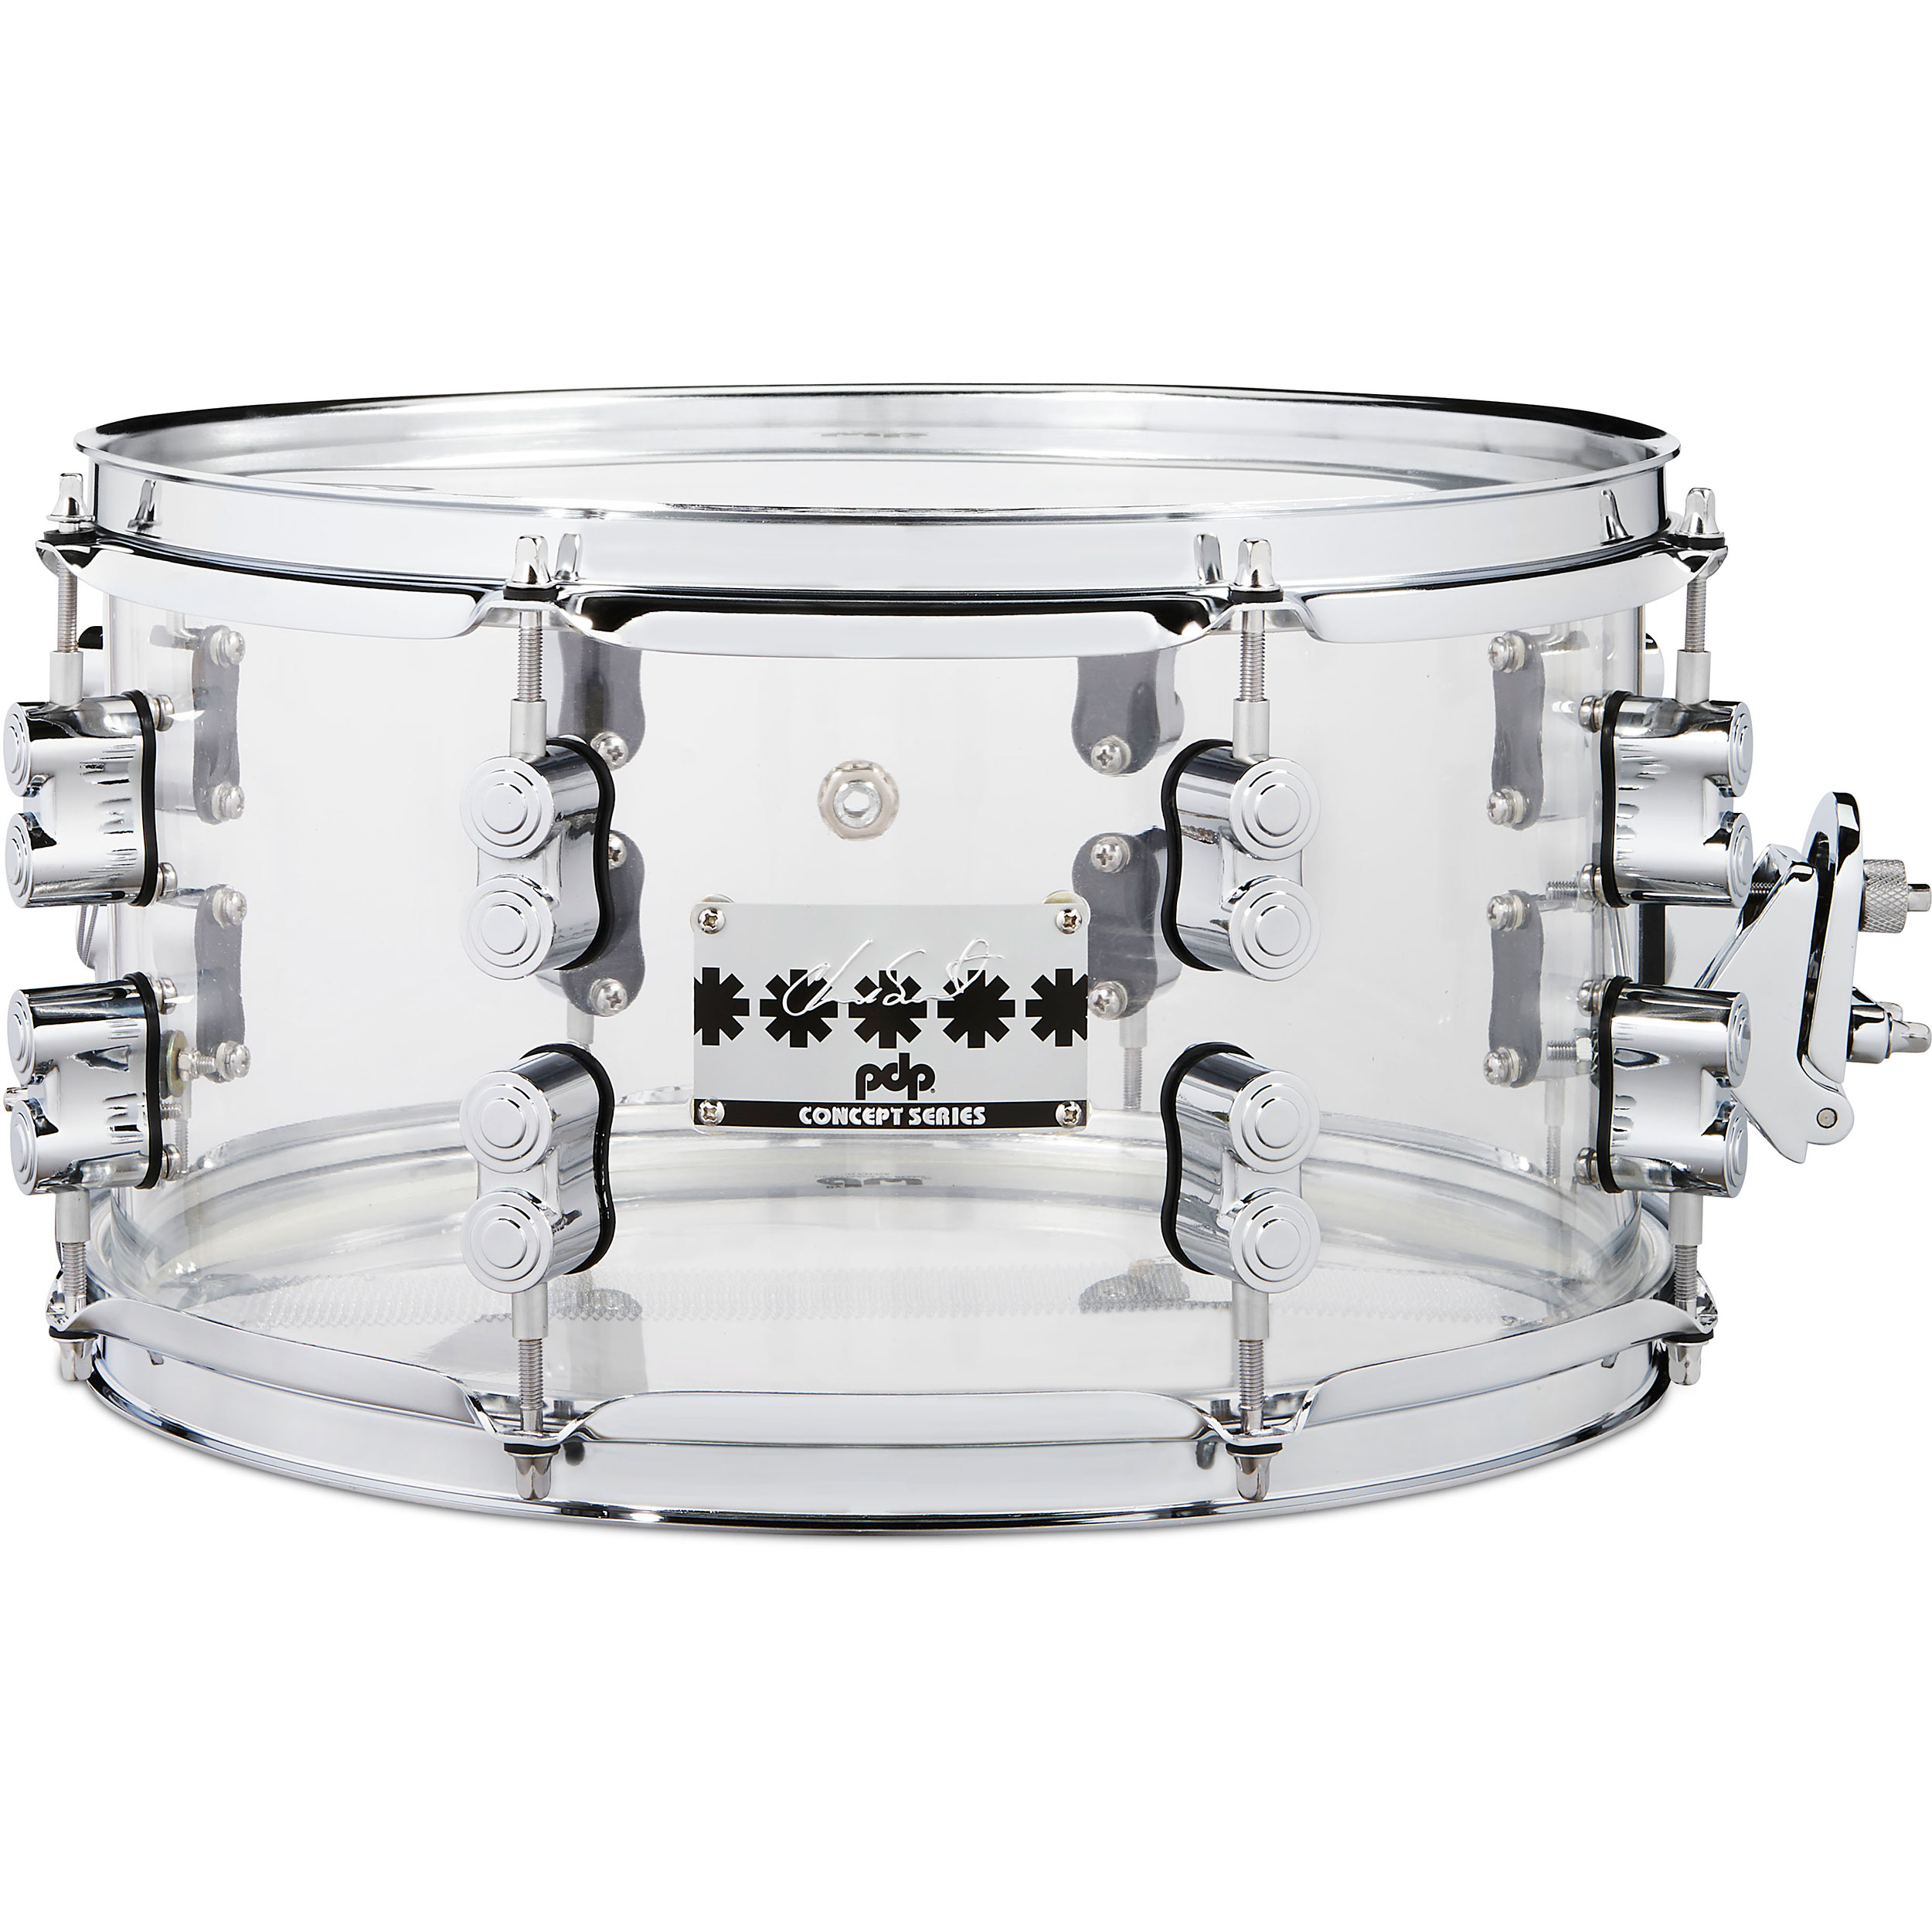 "PDP 7"" x 13"" Chad Smith Signature Clear Acrylic Snare Drum"